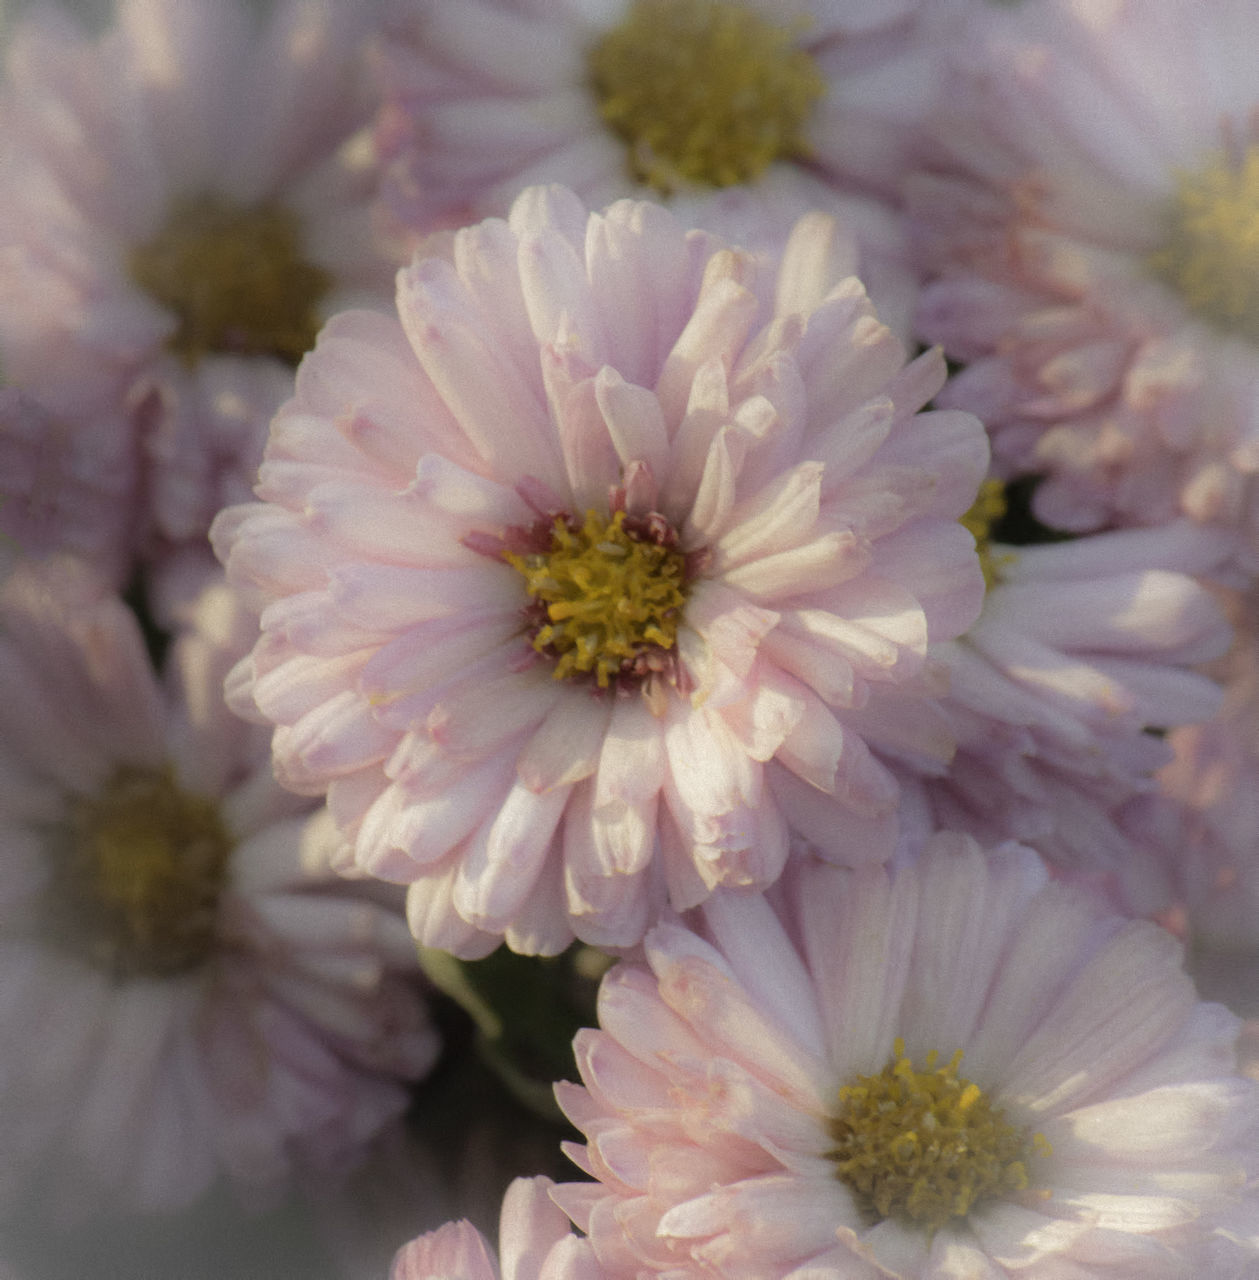 flower, petal, beauty in nature, nature, flower head, no people, plant, growth, fragility, freshness, close-up, blooming, day, outdoors